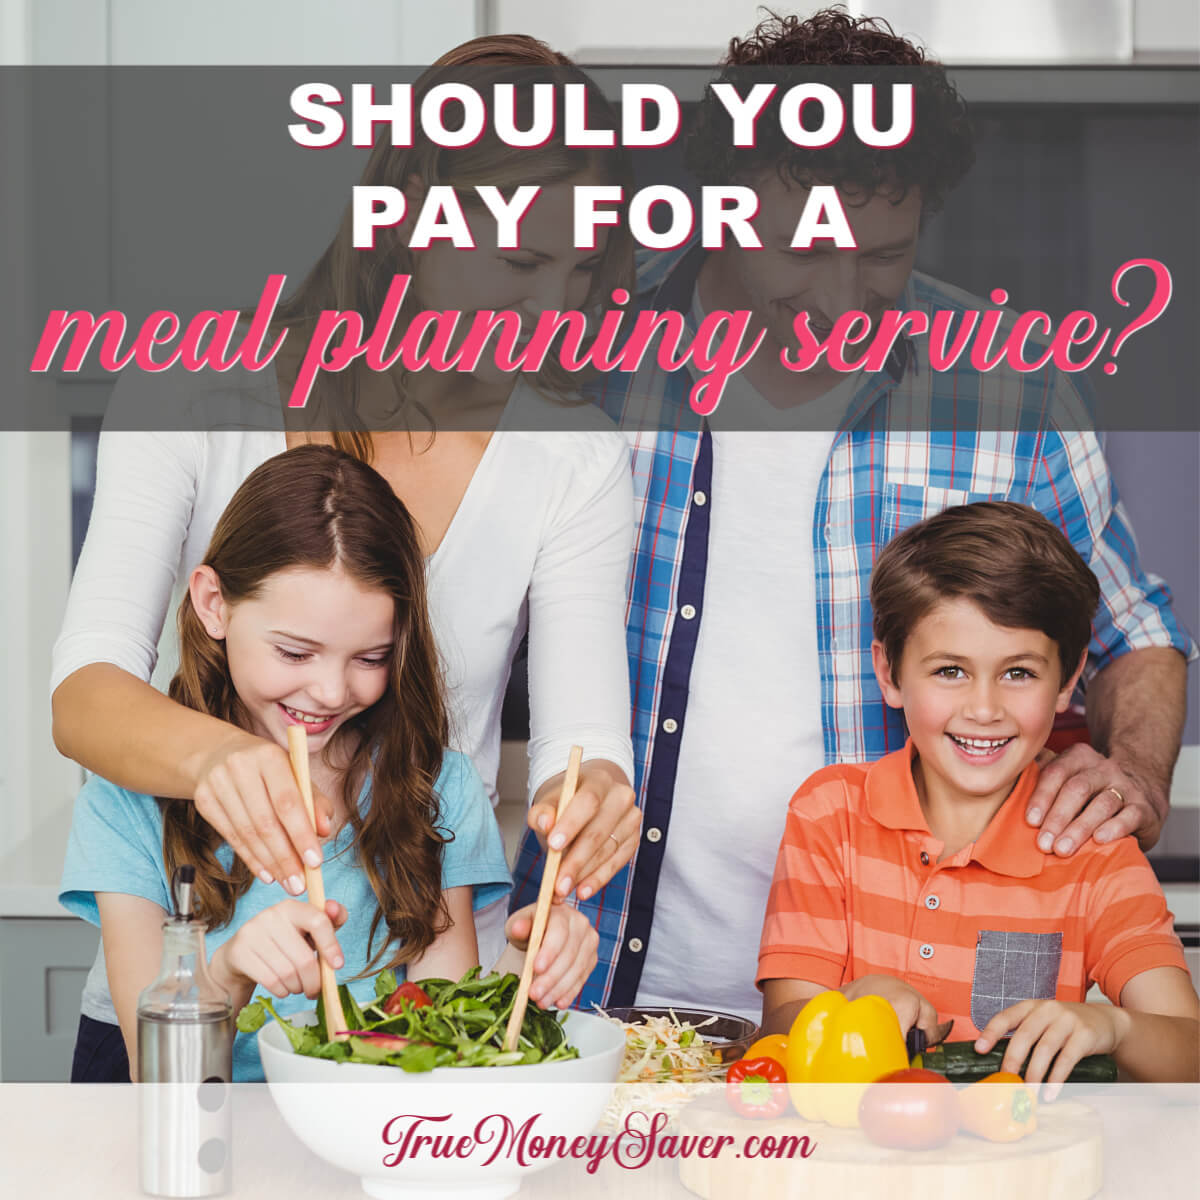 Should You Pay For A Meal Planning Service Right Now?